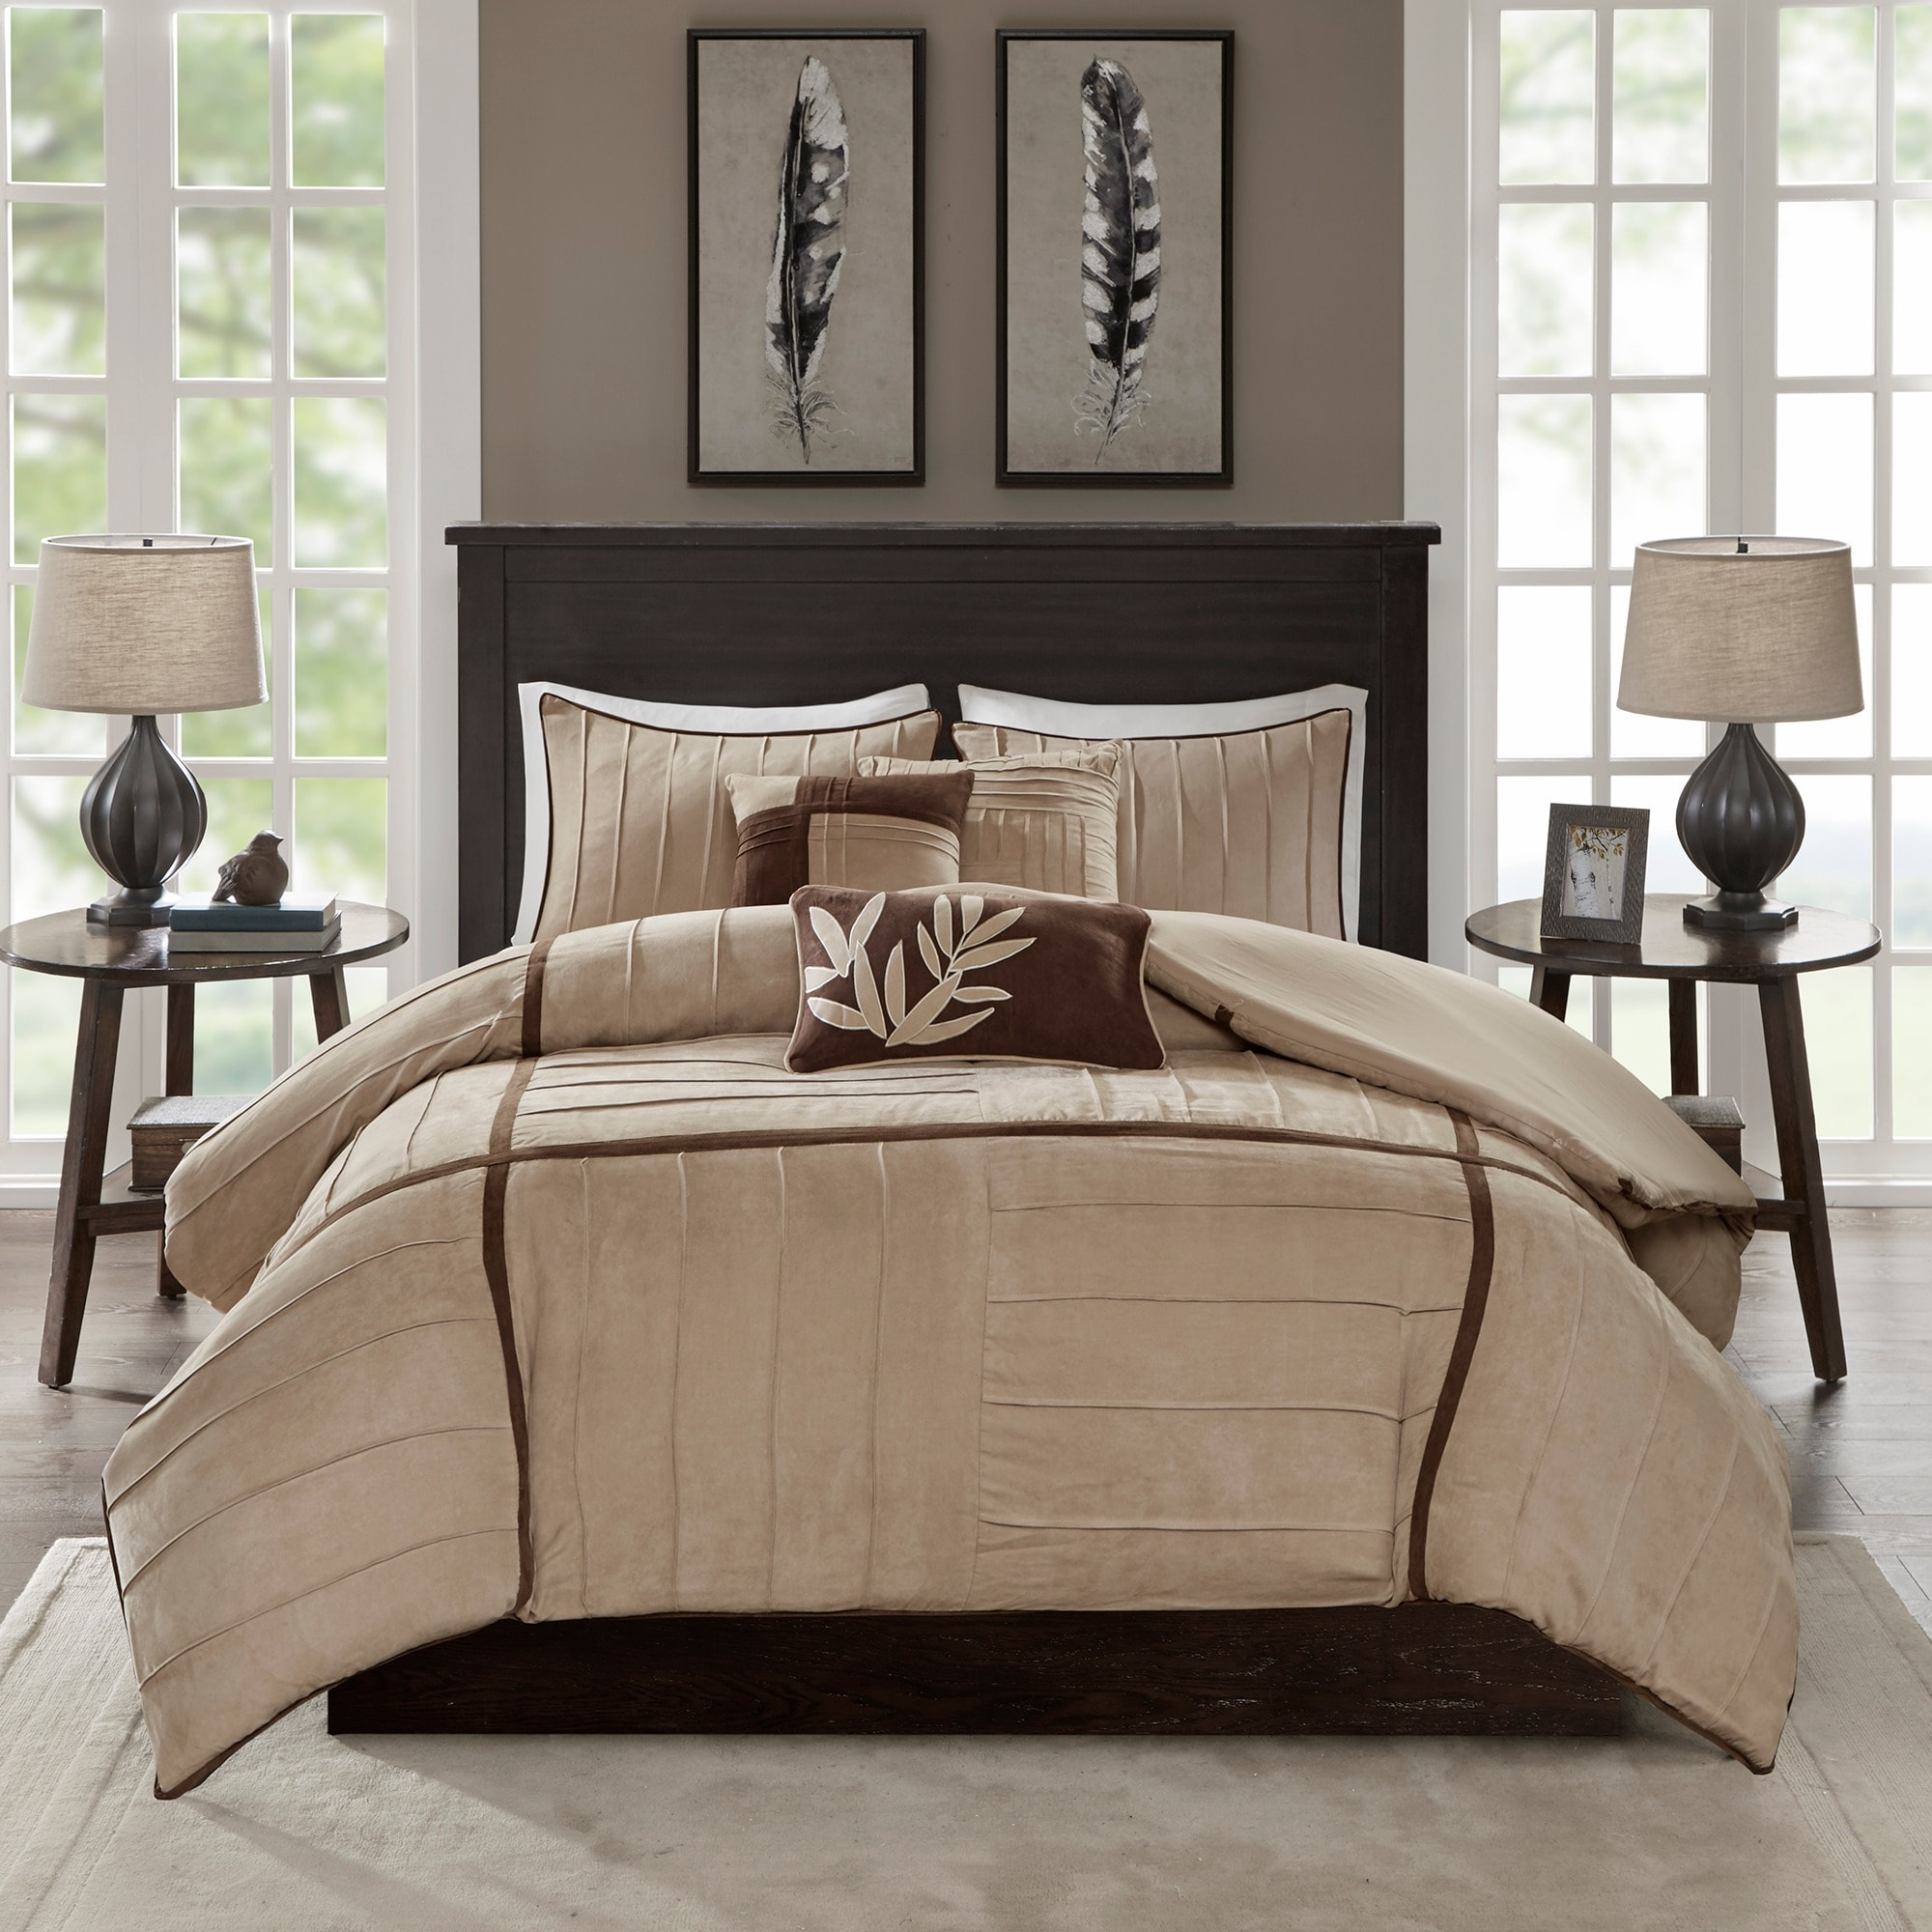 product by cover stripe cotton marquisanddawe brushed set original dawe duvet marquis beige